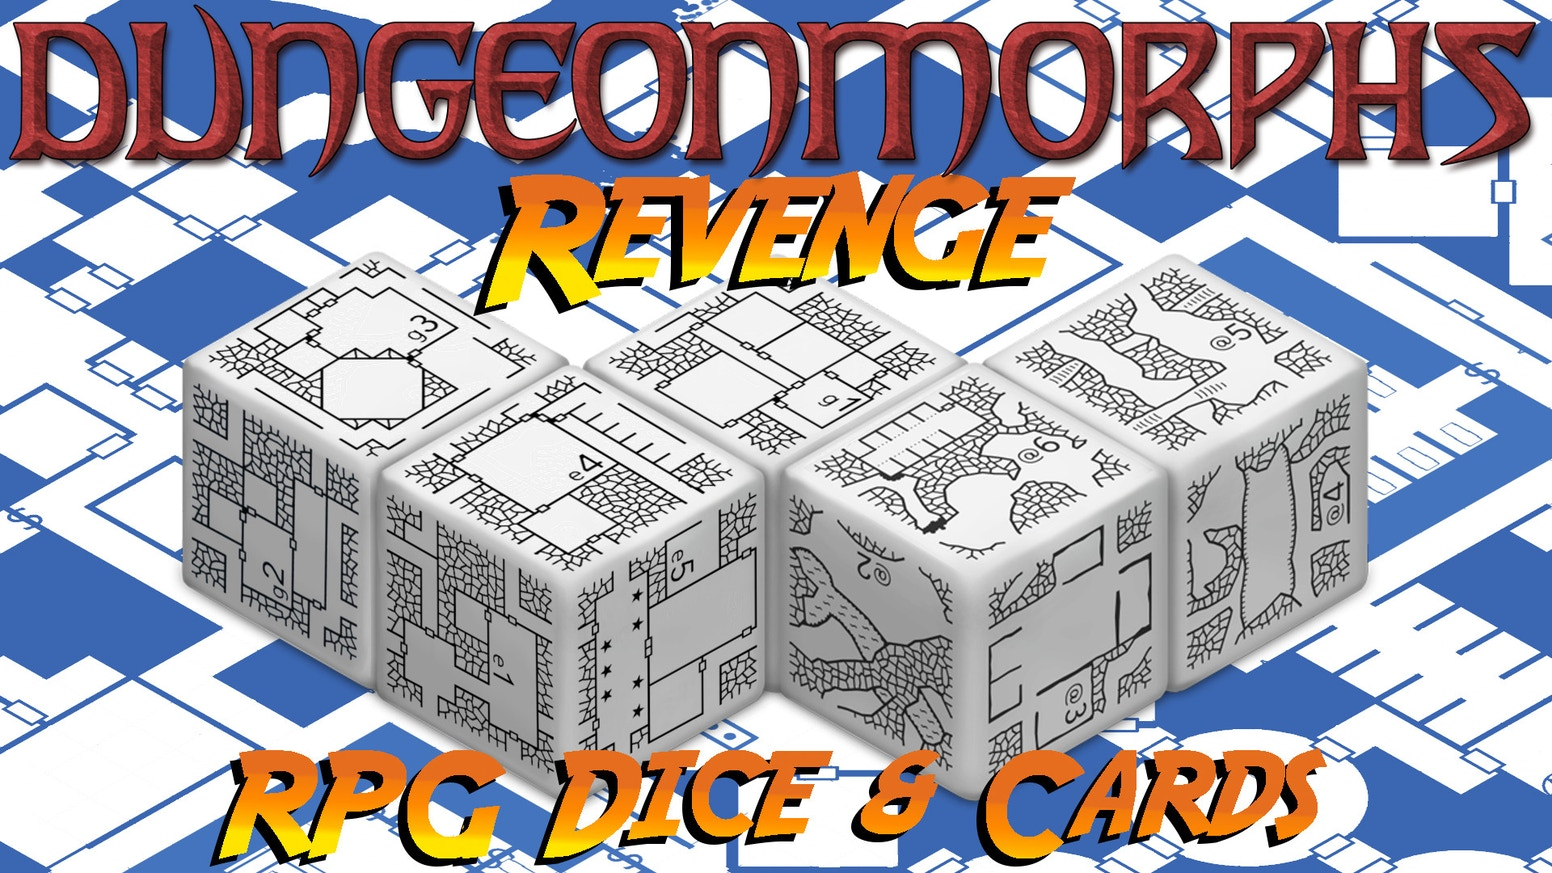 More sets of DungeonMorph Dice - connectable mini-dungeon designs on dice. Plus matching cards, battlemat-style PDFs, and more.